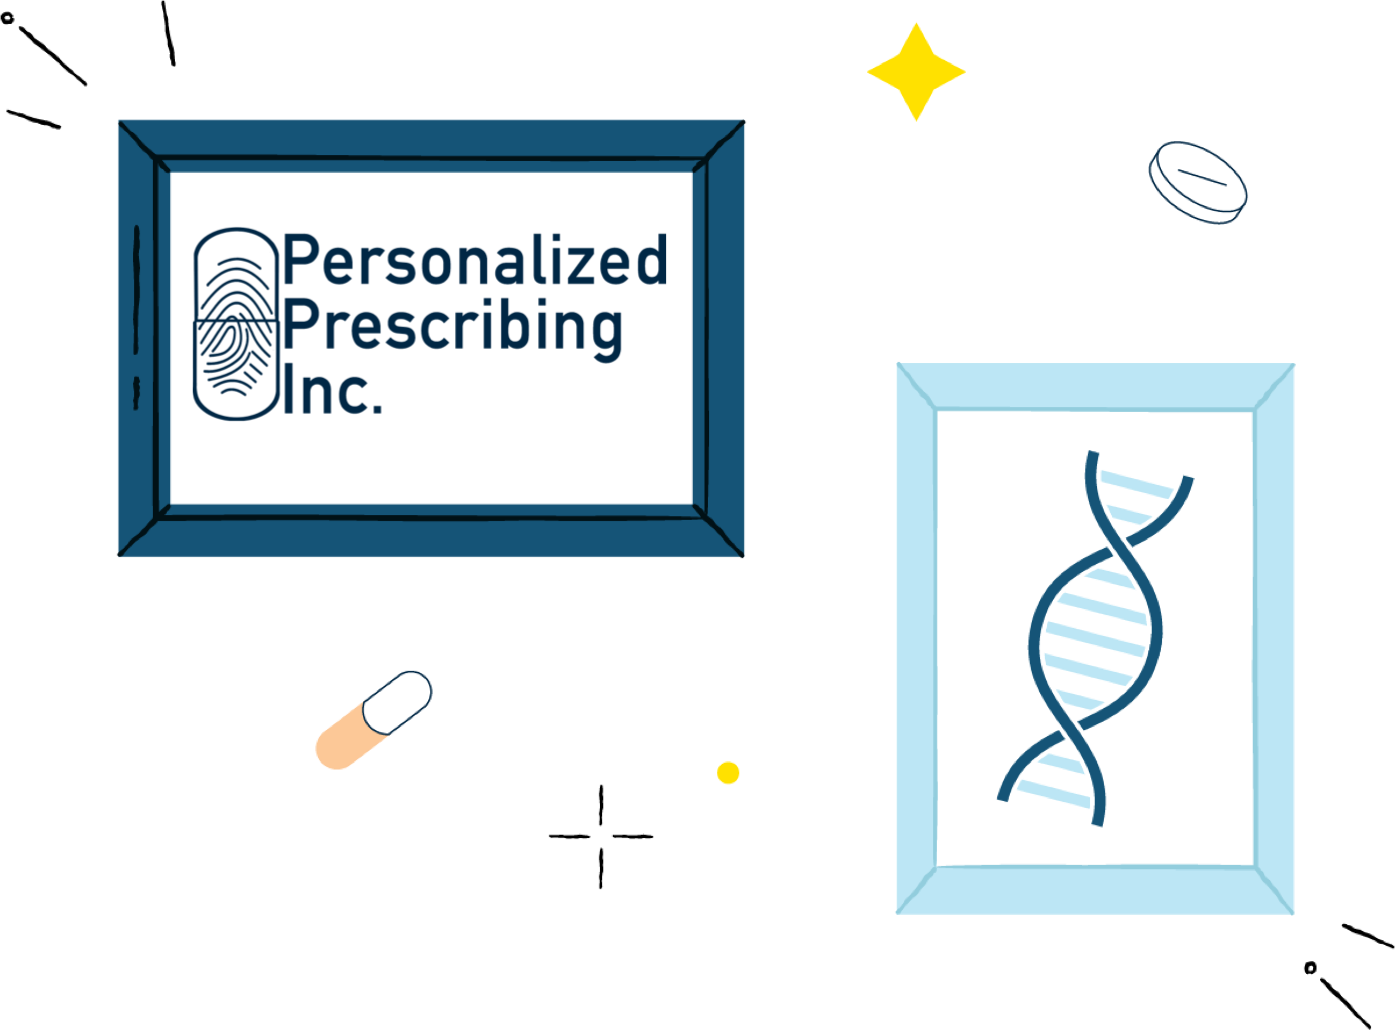 personalized prescribing